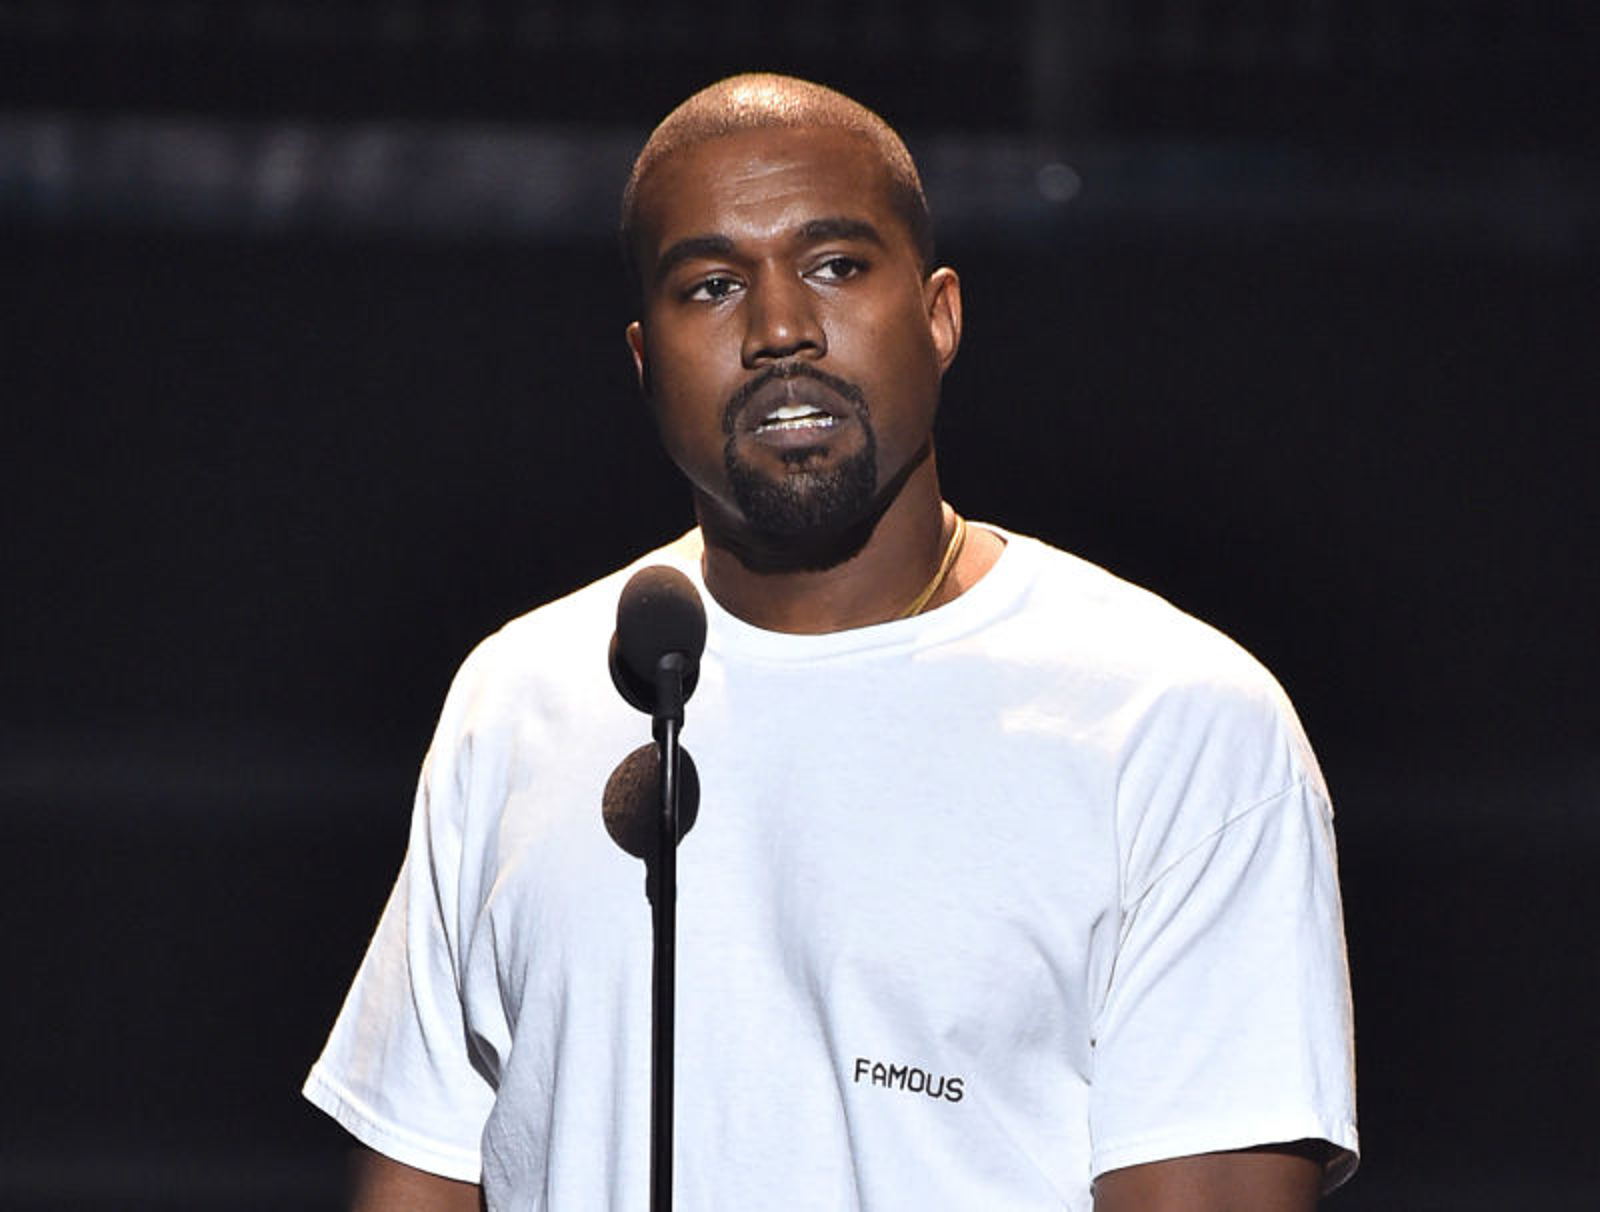 Kanye West Announces His New Name Is Tim